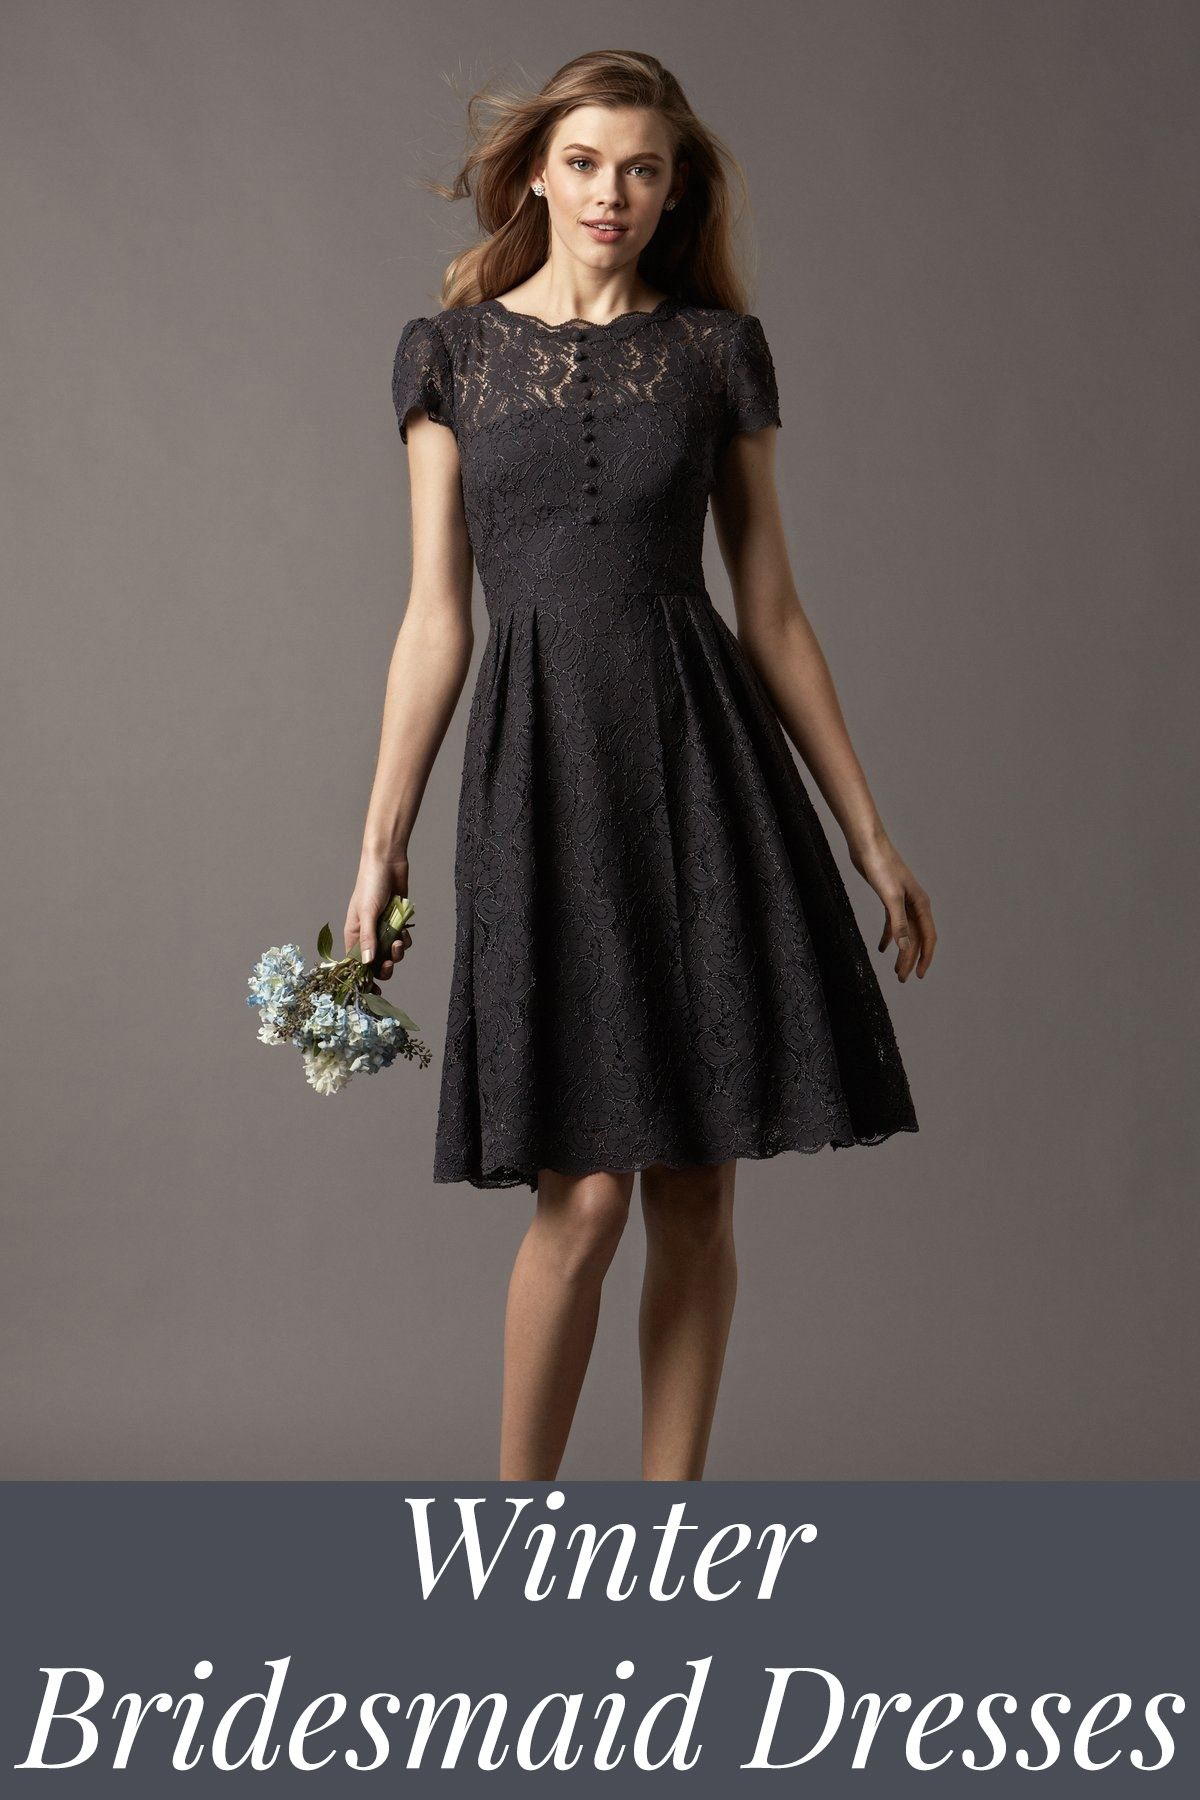 Winter bridesmaid dresses for every style bridesmaids pinterest